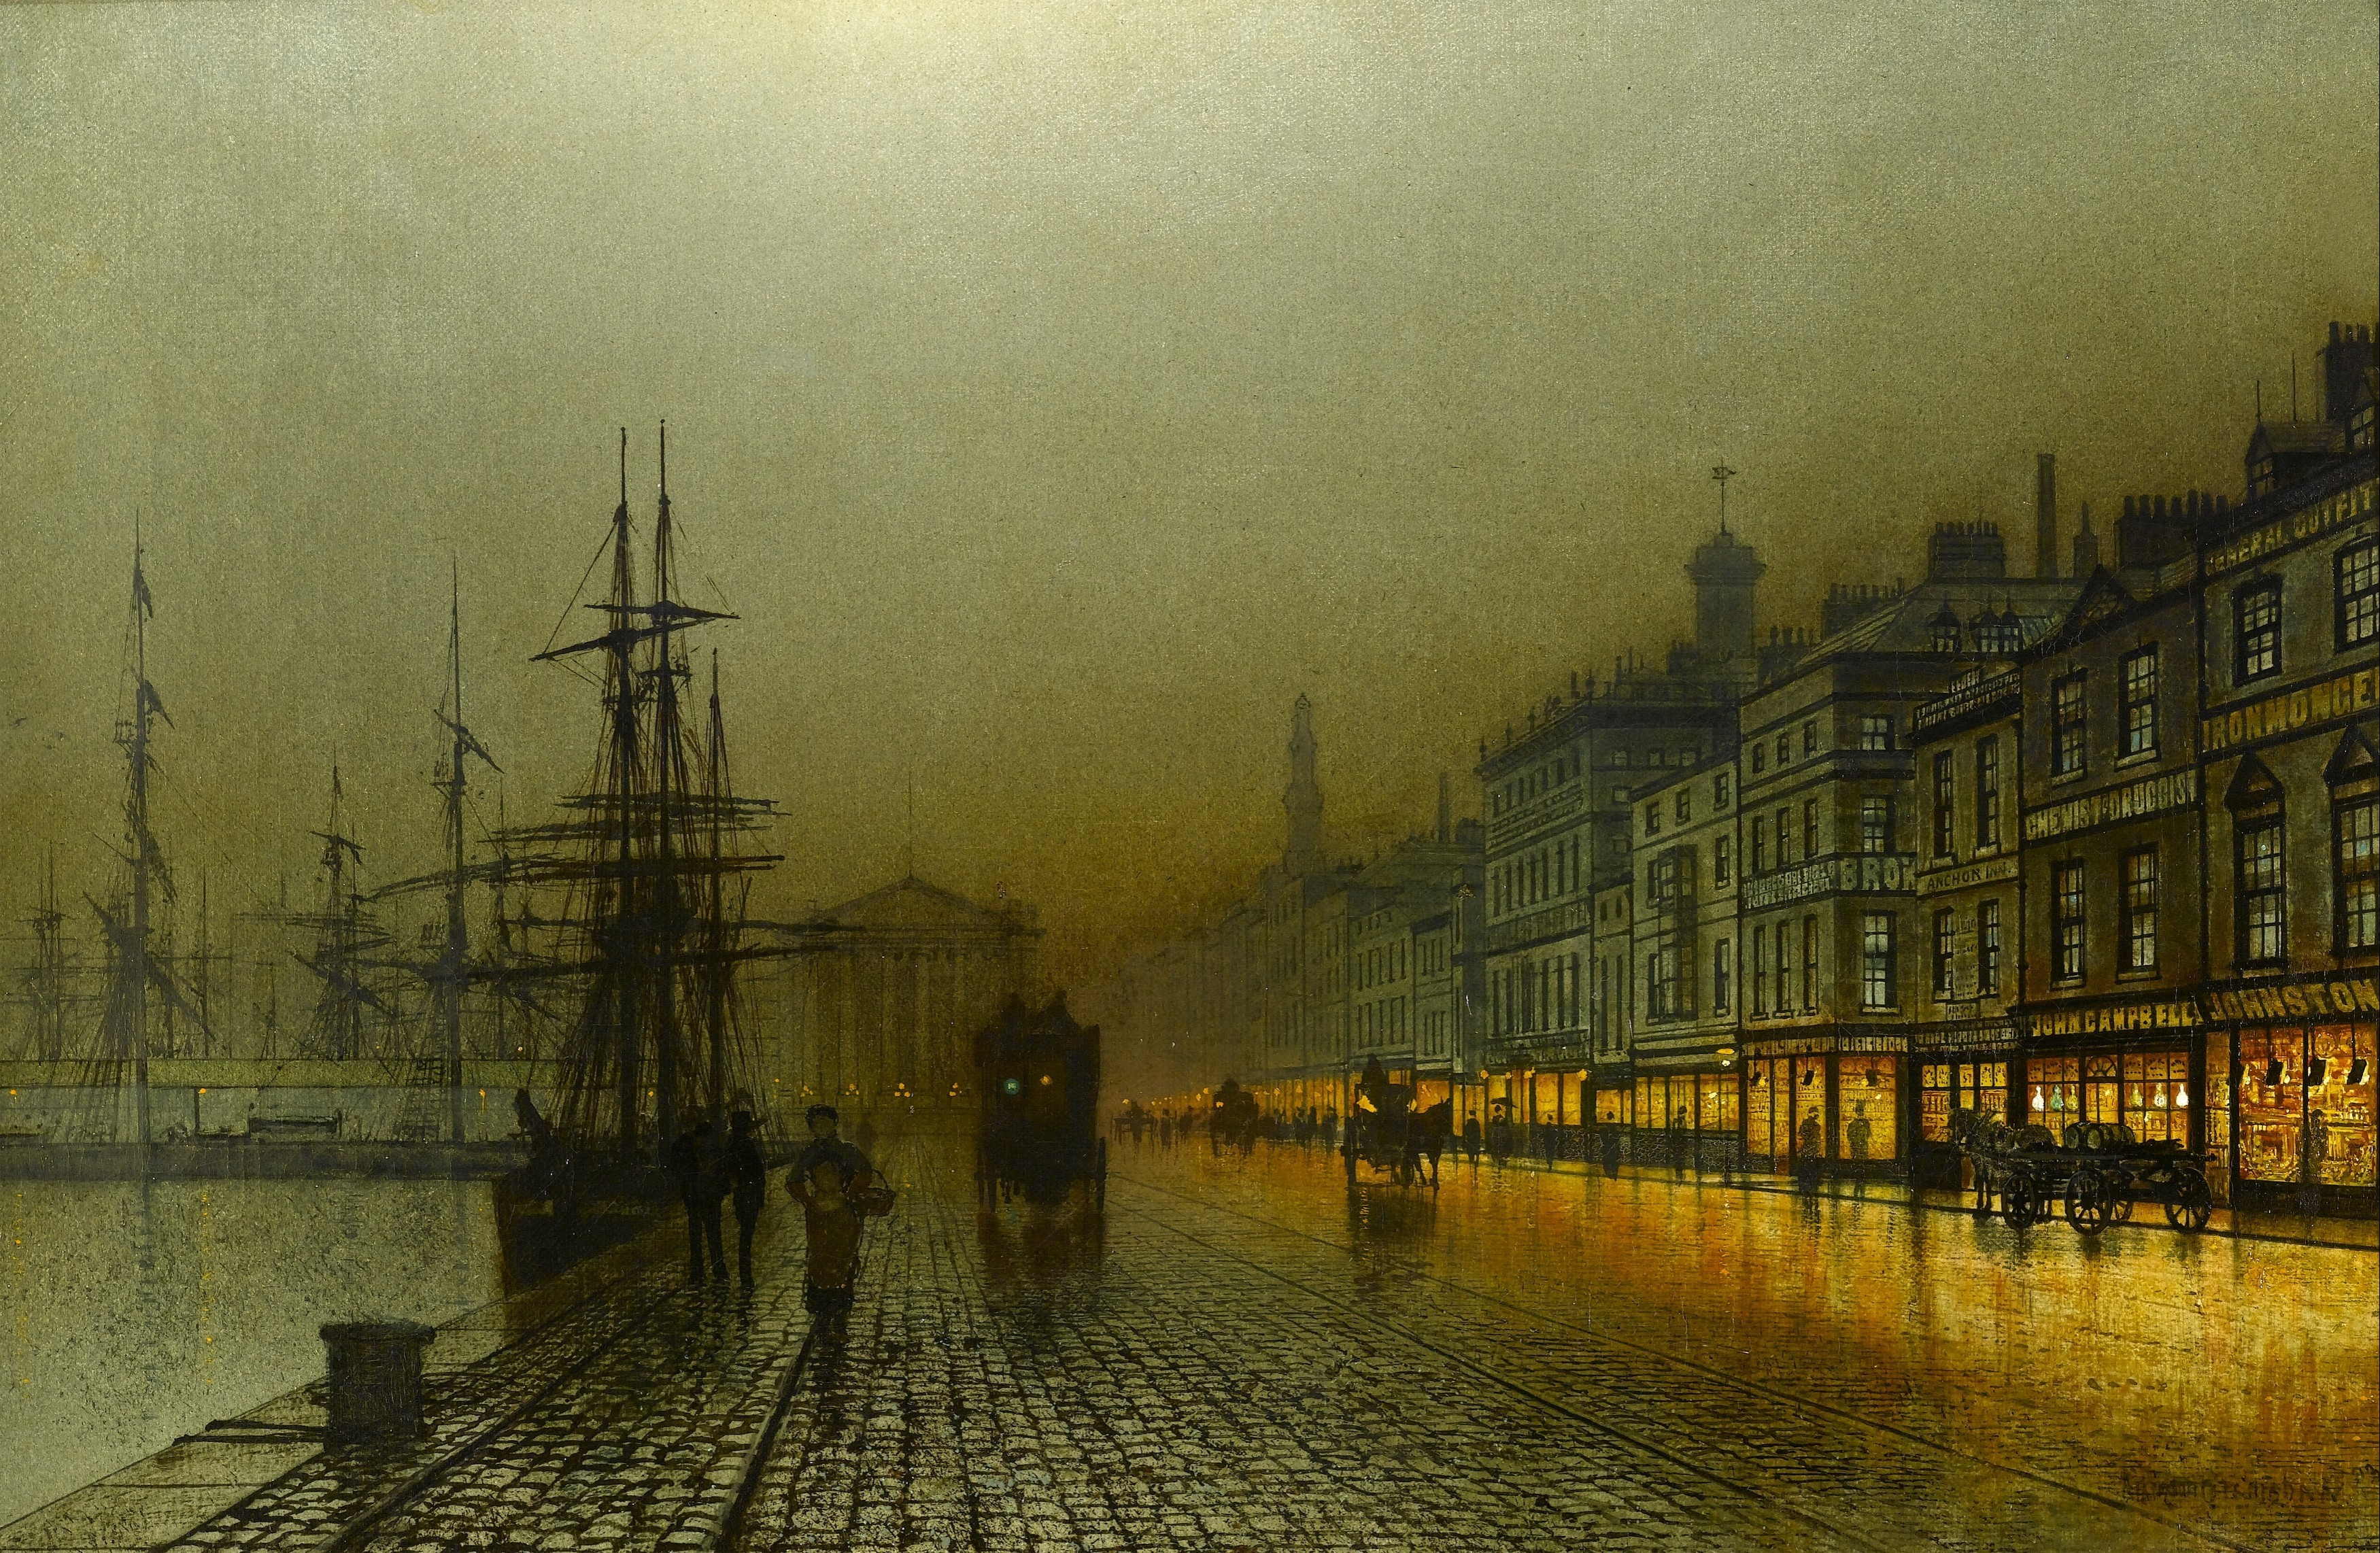 London England Iphone Wallpaper Artwork John Atkinson Grimshaw Wallpaper Allwallpaper In